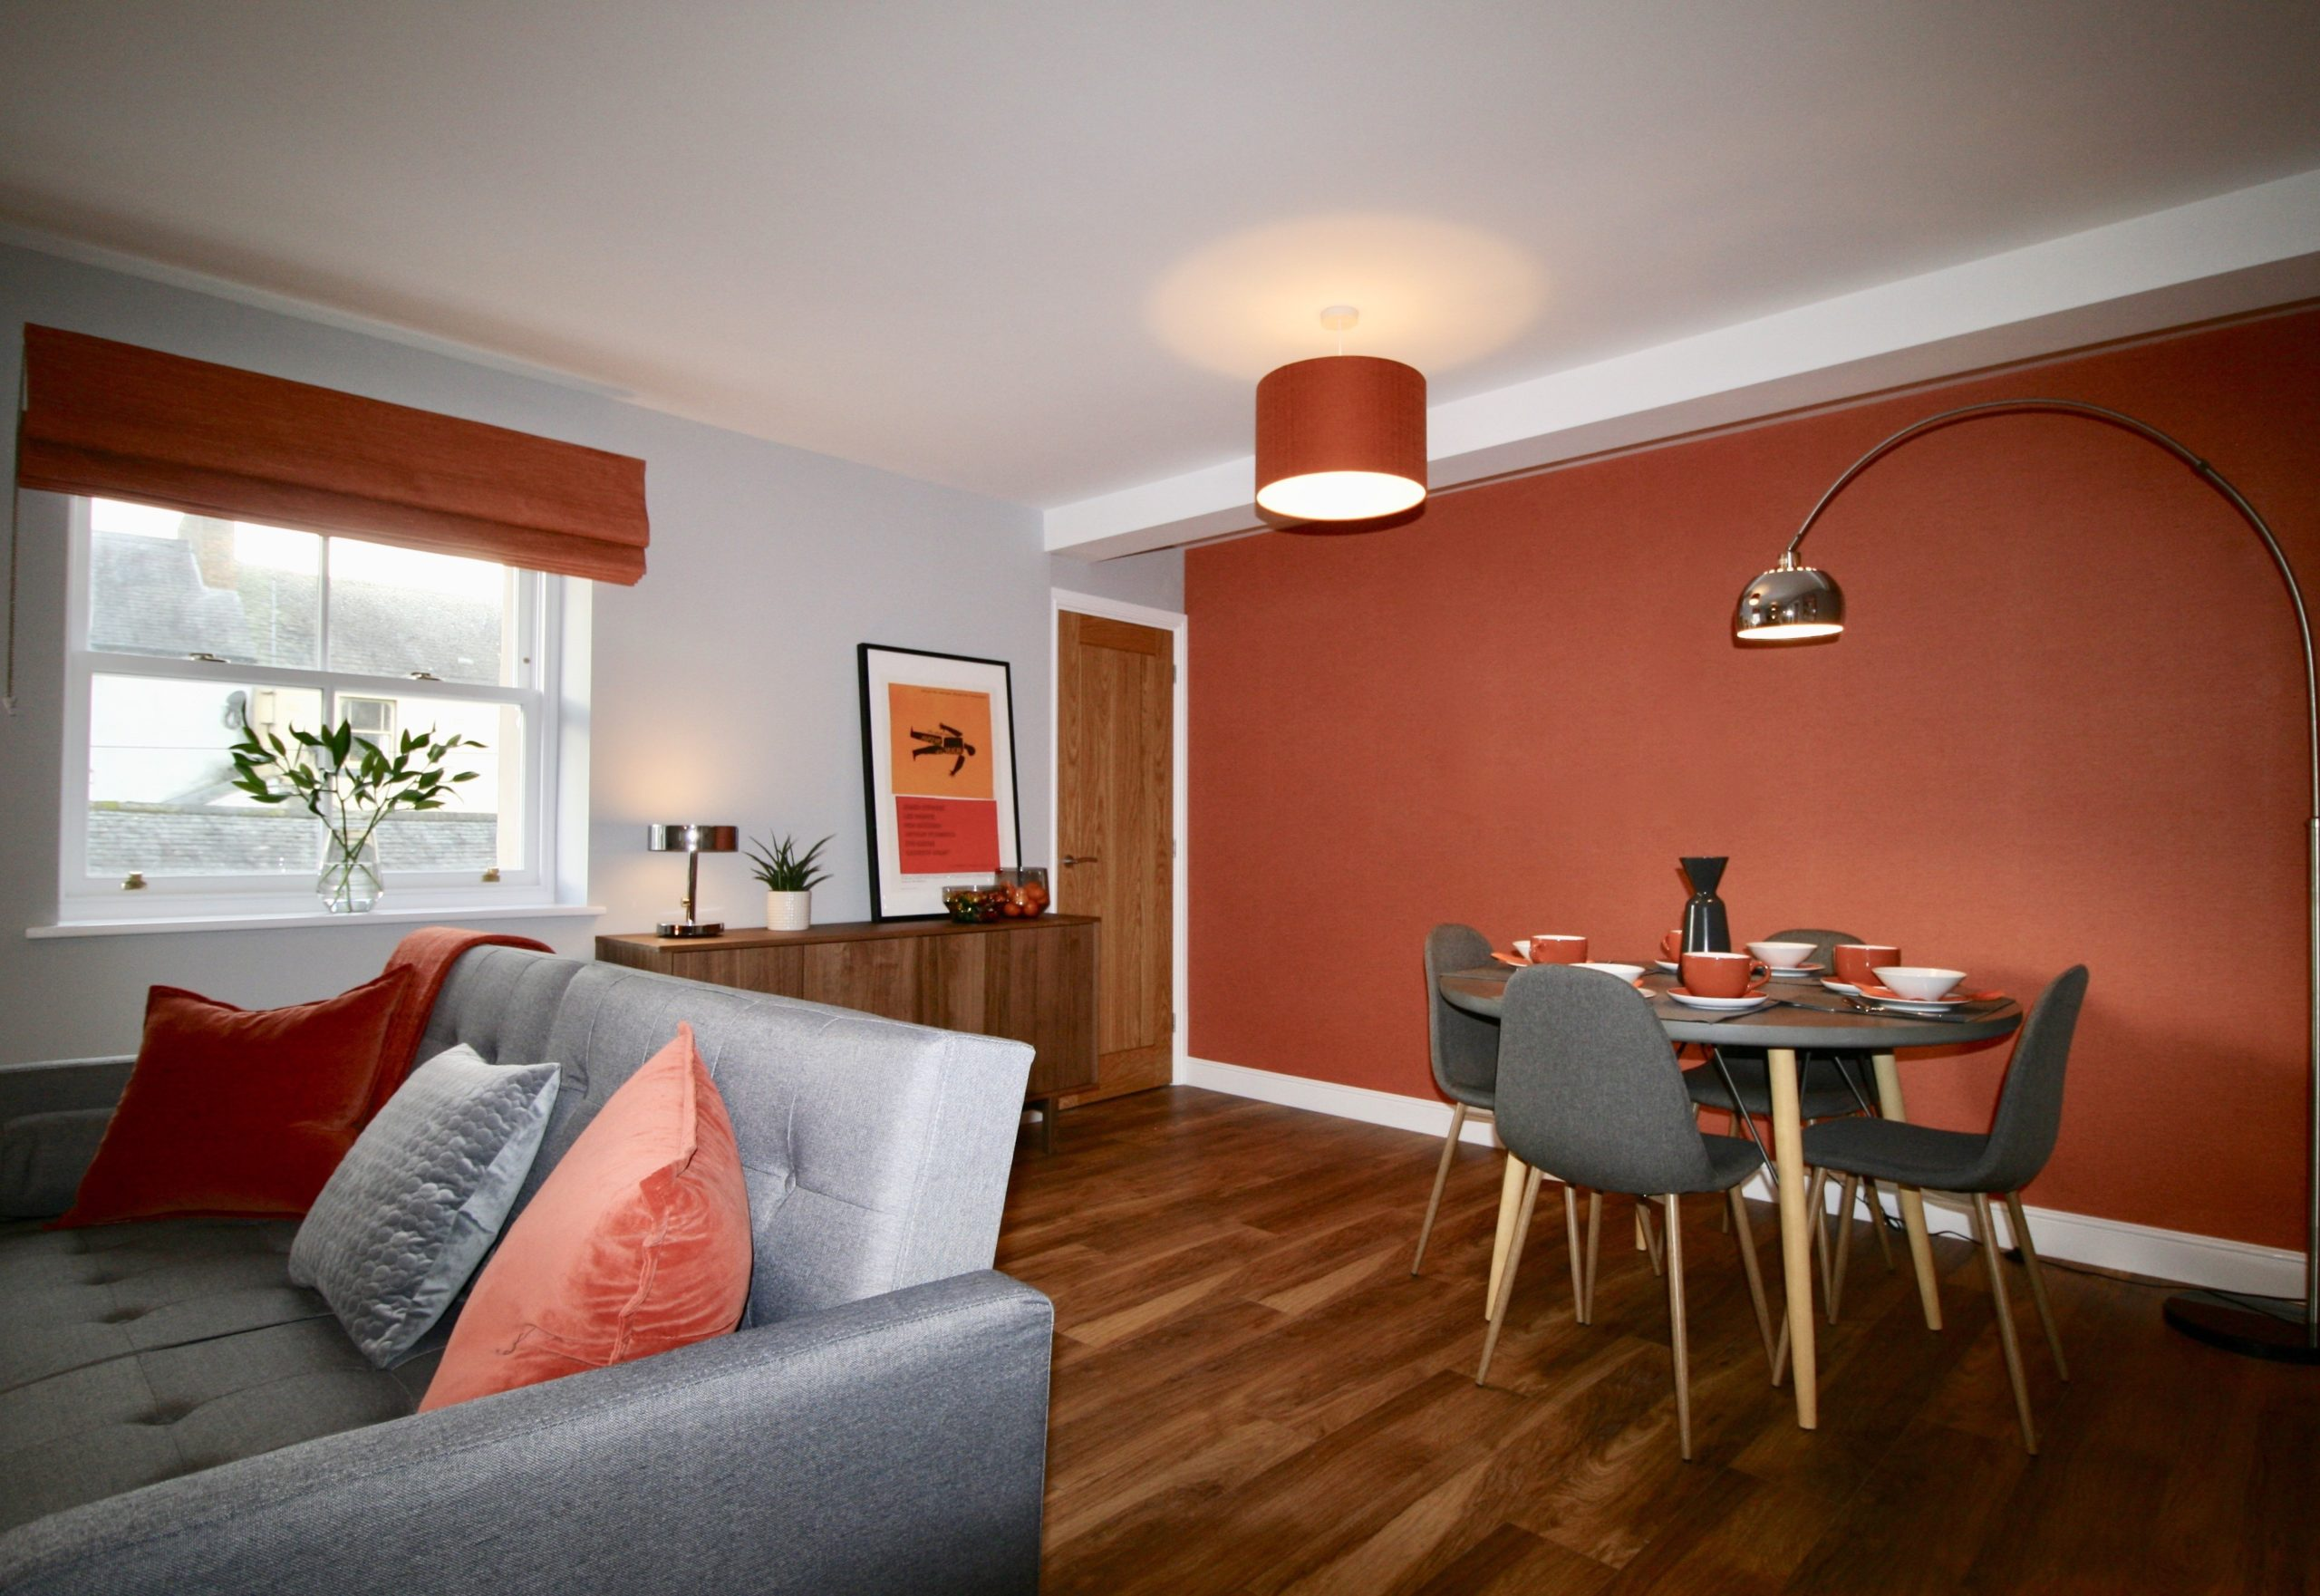 Open plan living dining room in show home at John Dalton Building apartments on Challoner Street in Cockermouth